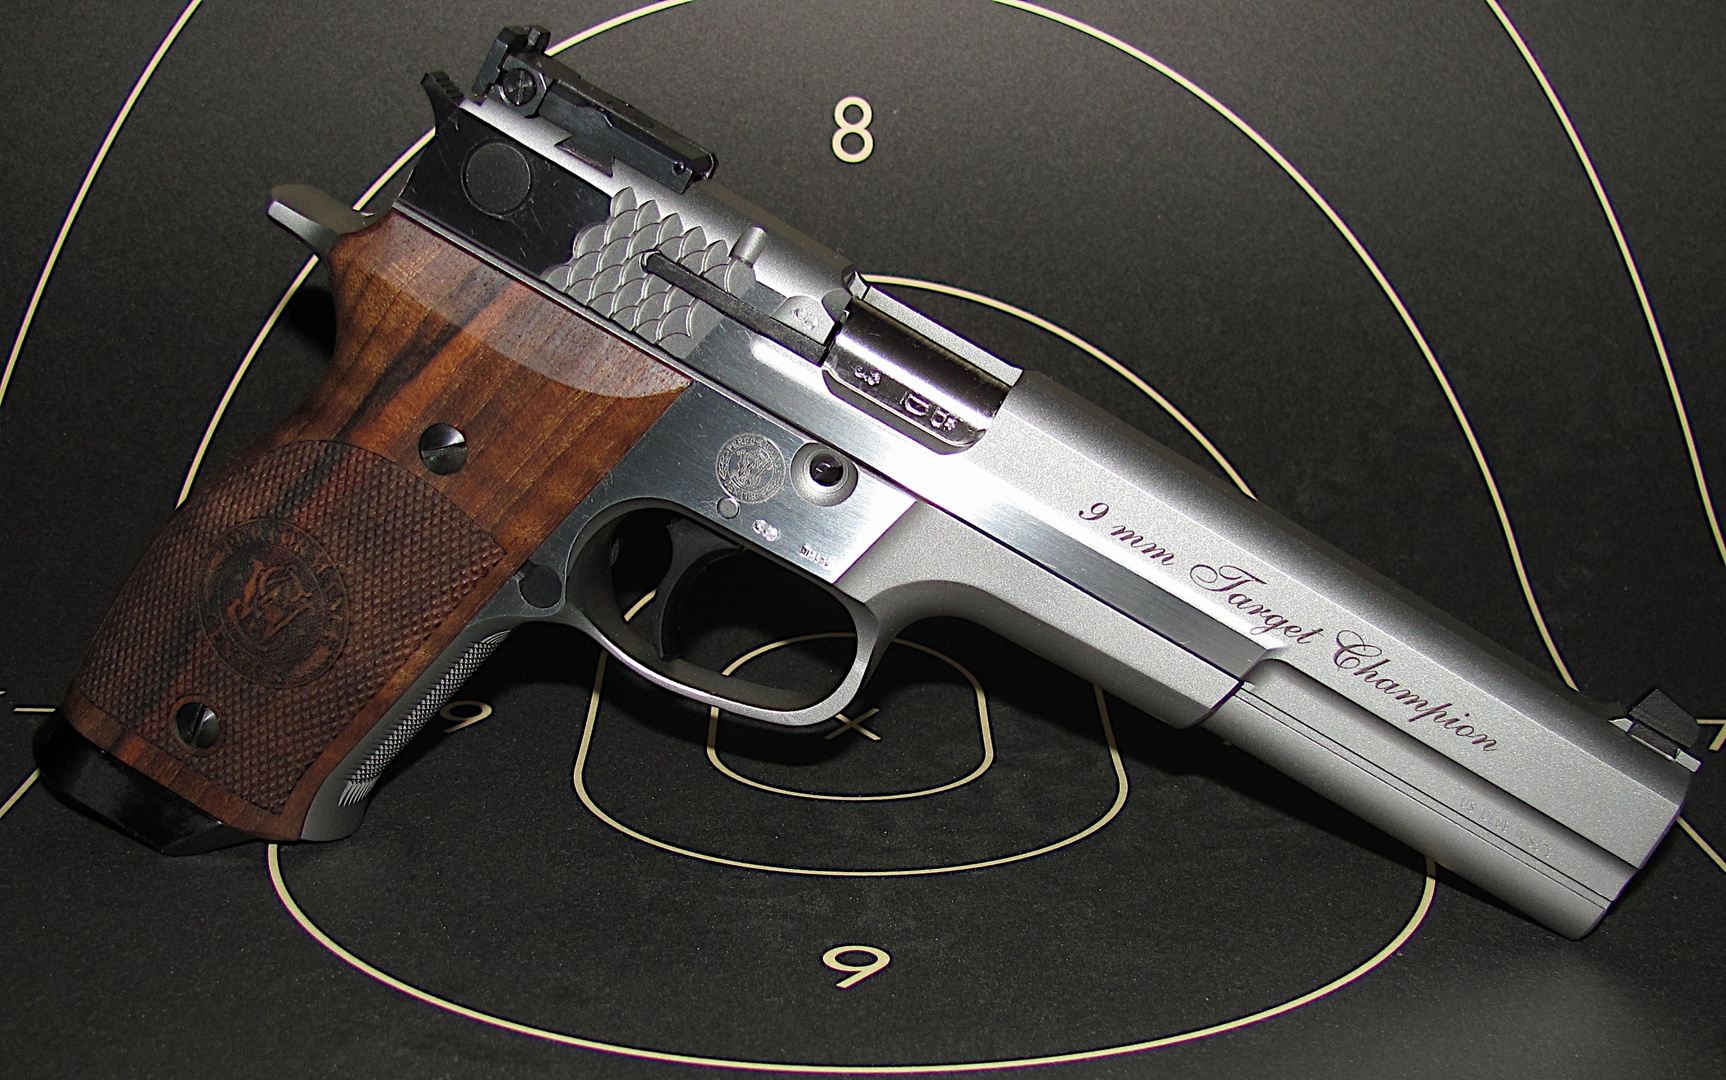 Smith & Wesson Target Champion 9mm